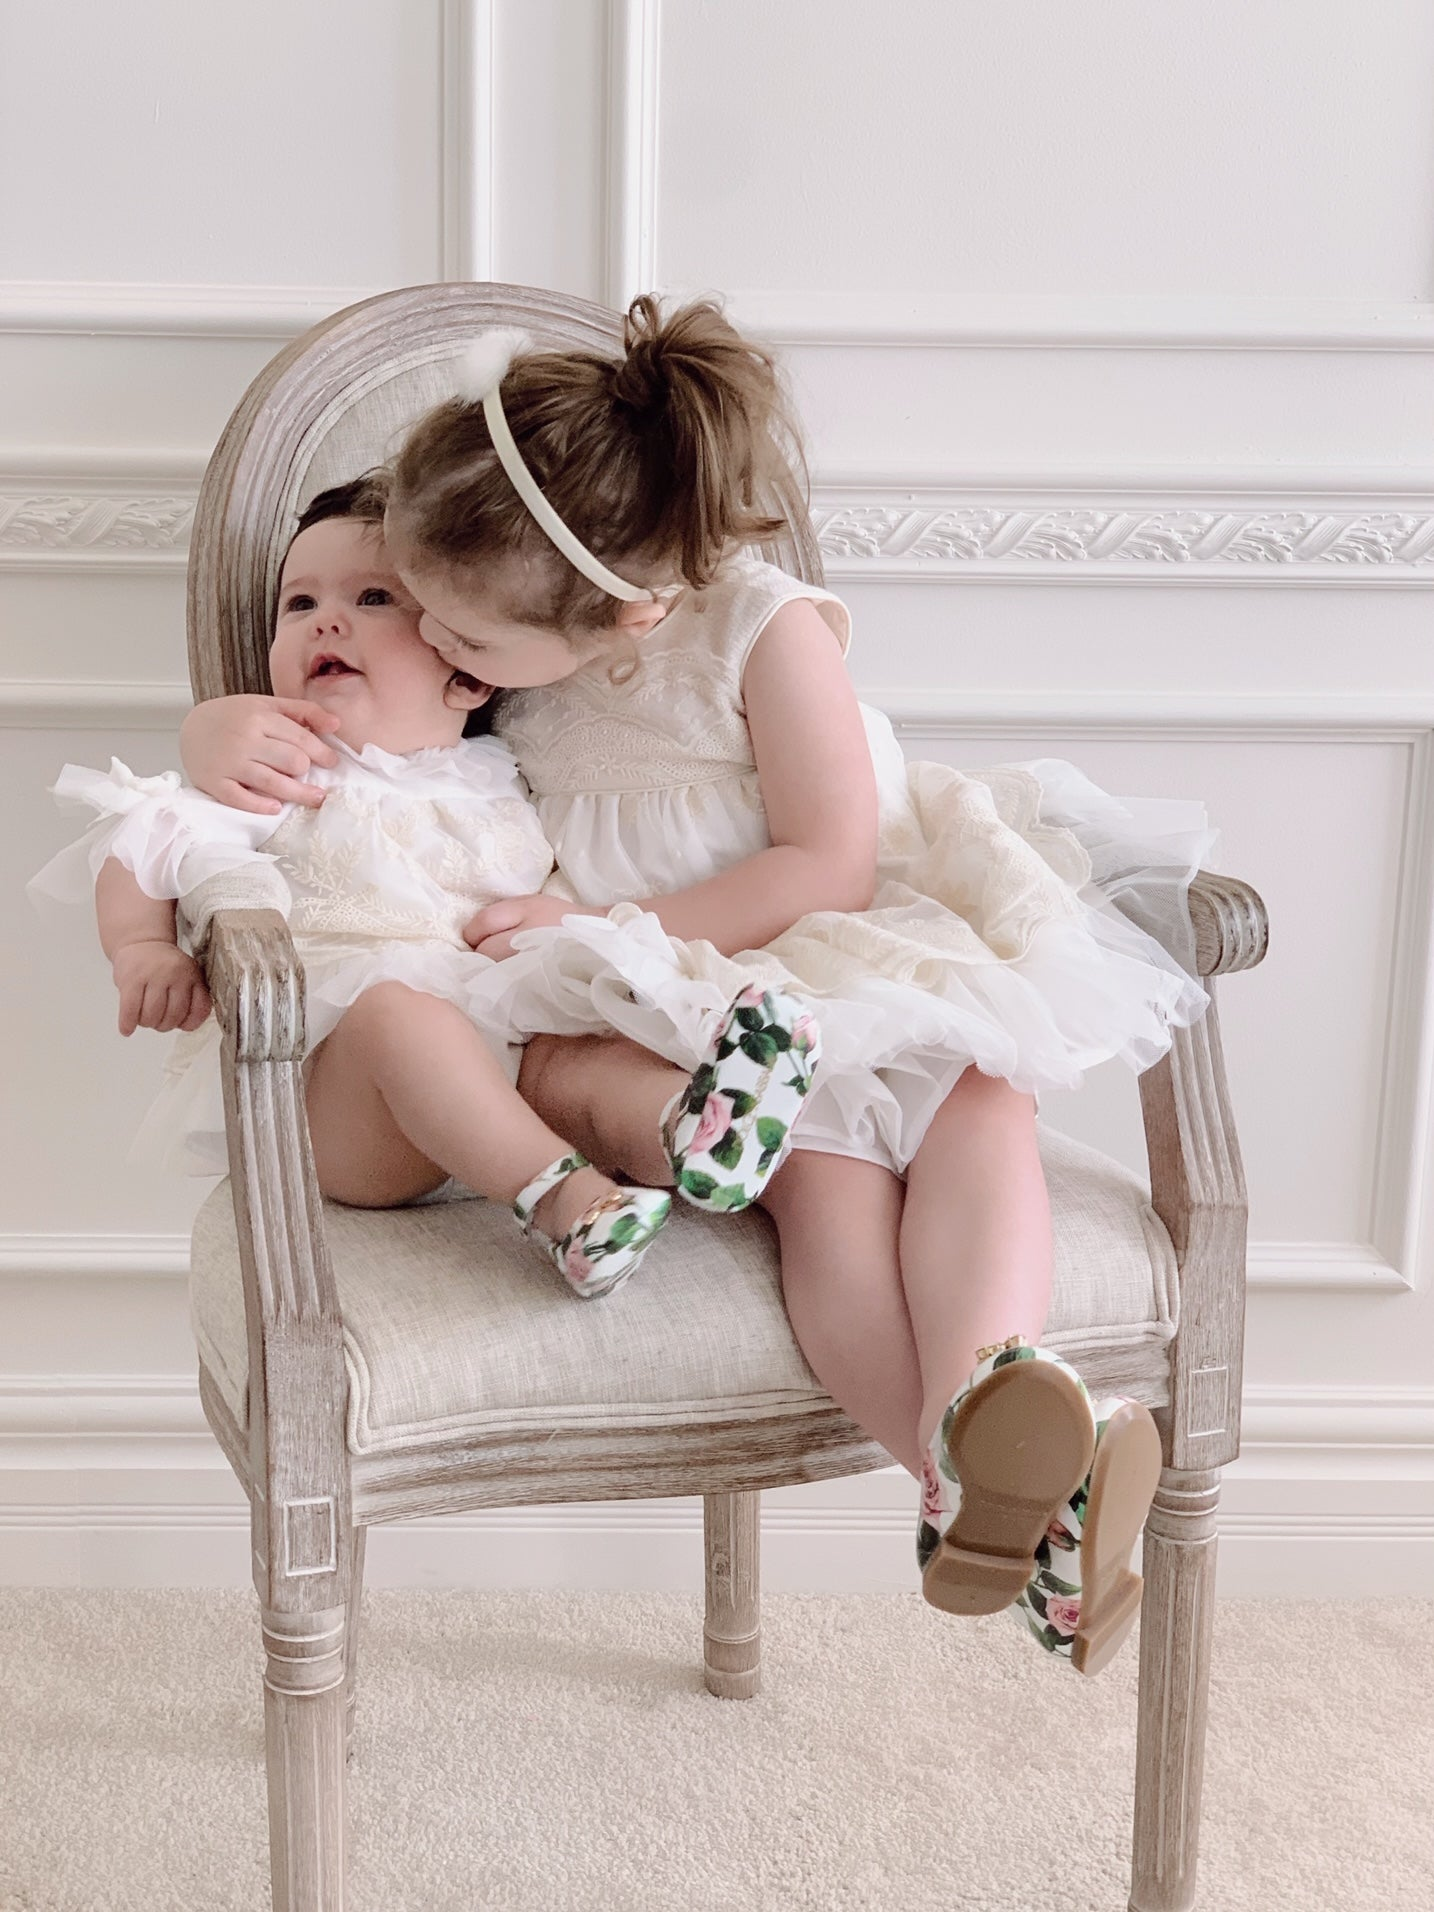 Children's fashion : how to dress a little girl - Charlotte sy Dimby